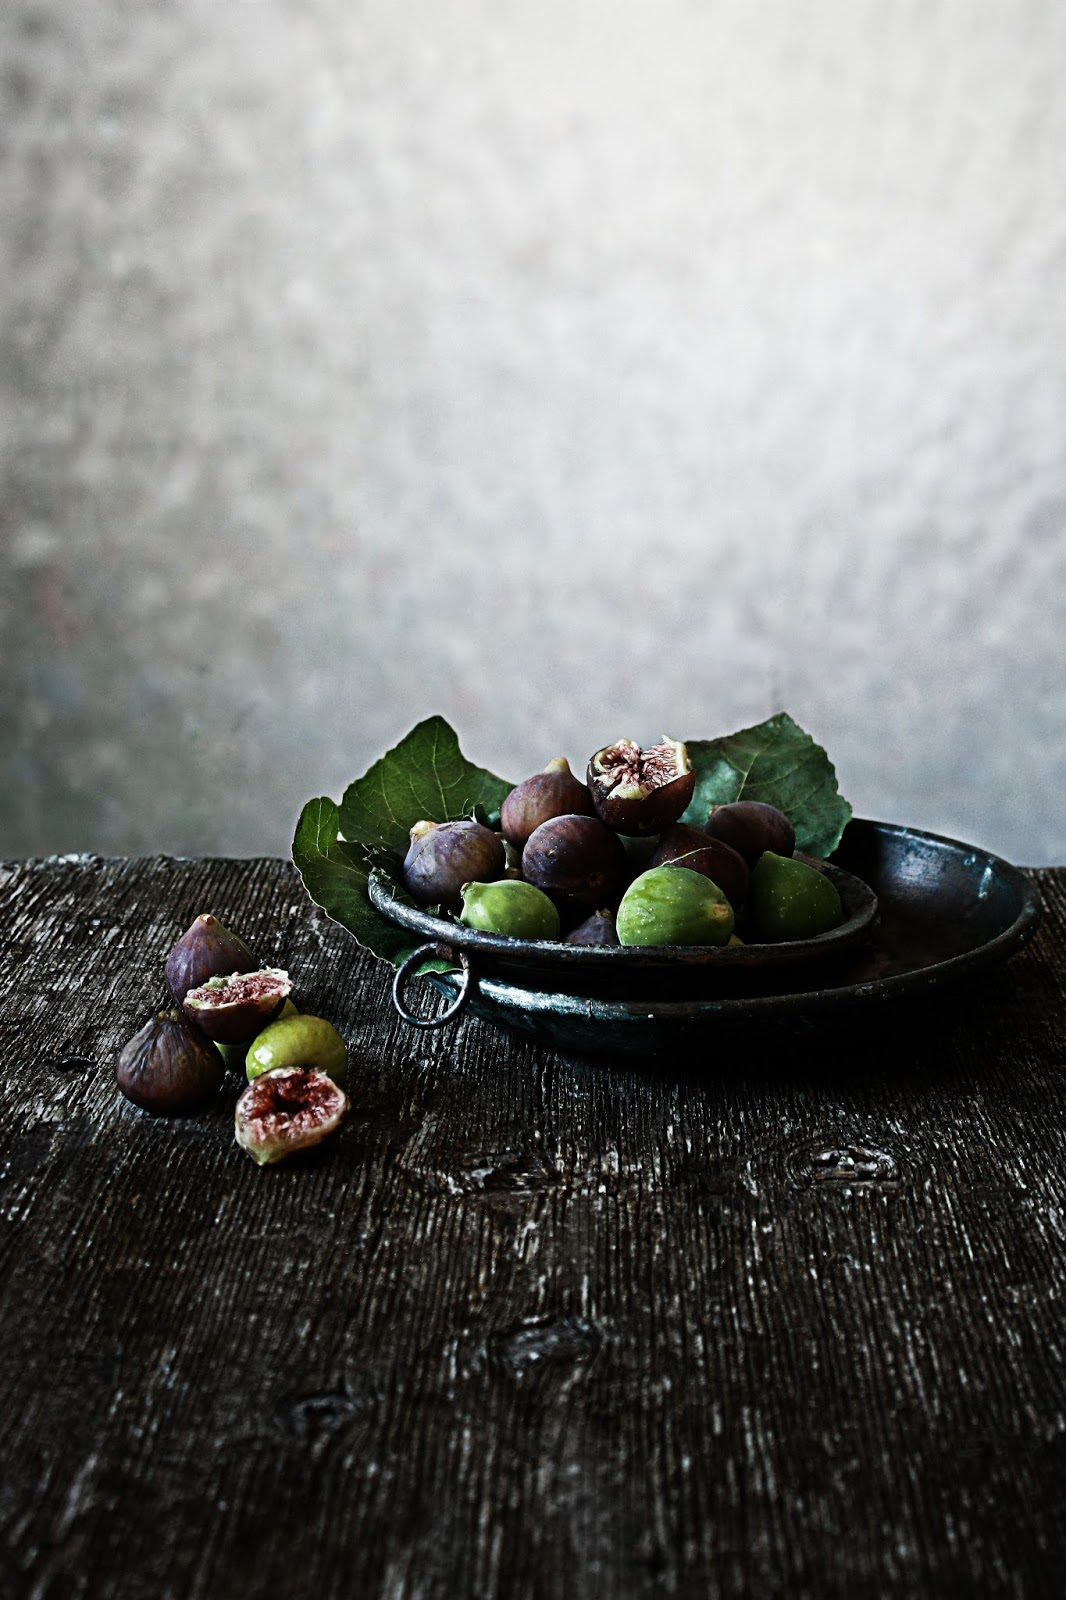 figs - photography and styling by Mónica Pinto, her blog - Pratos e Travessas blogspot as seen on linenandlavender.net - http://www.linenandlavender.net/2013/10/around-world-our-latest-discovery.html